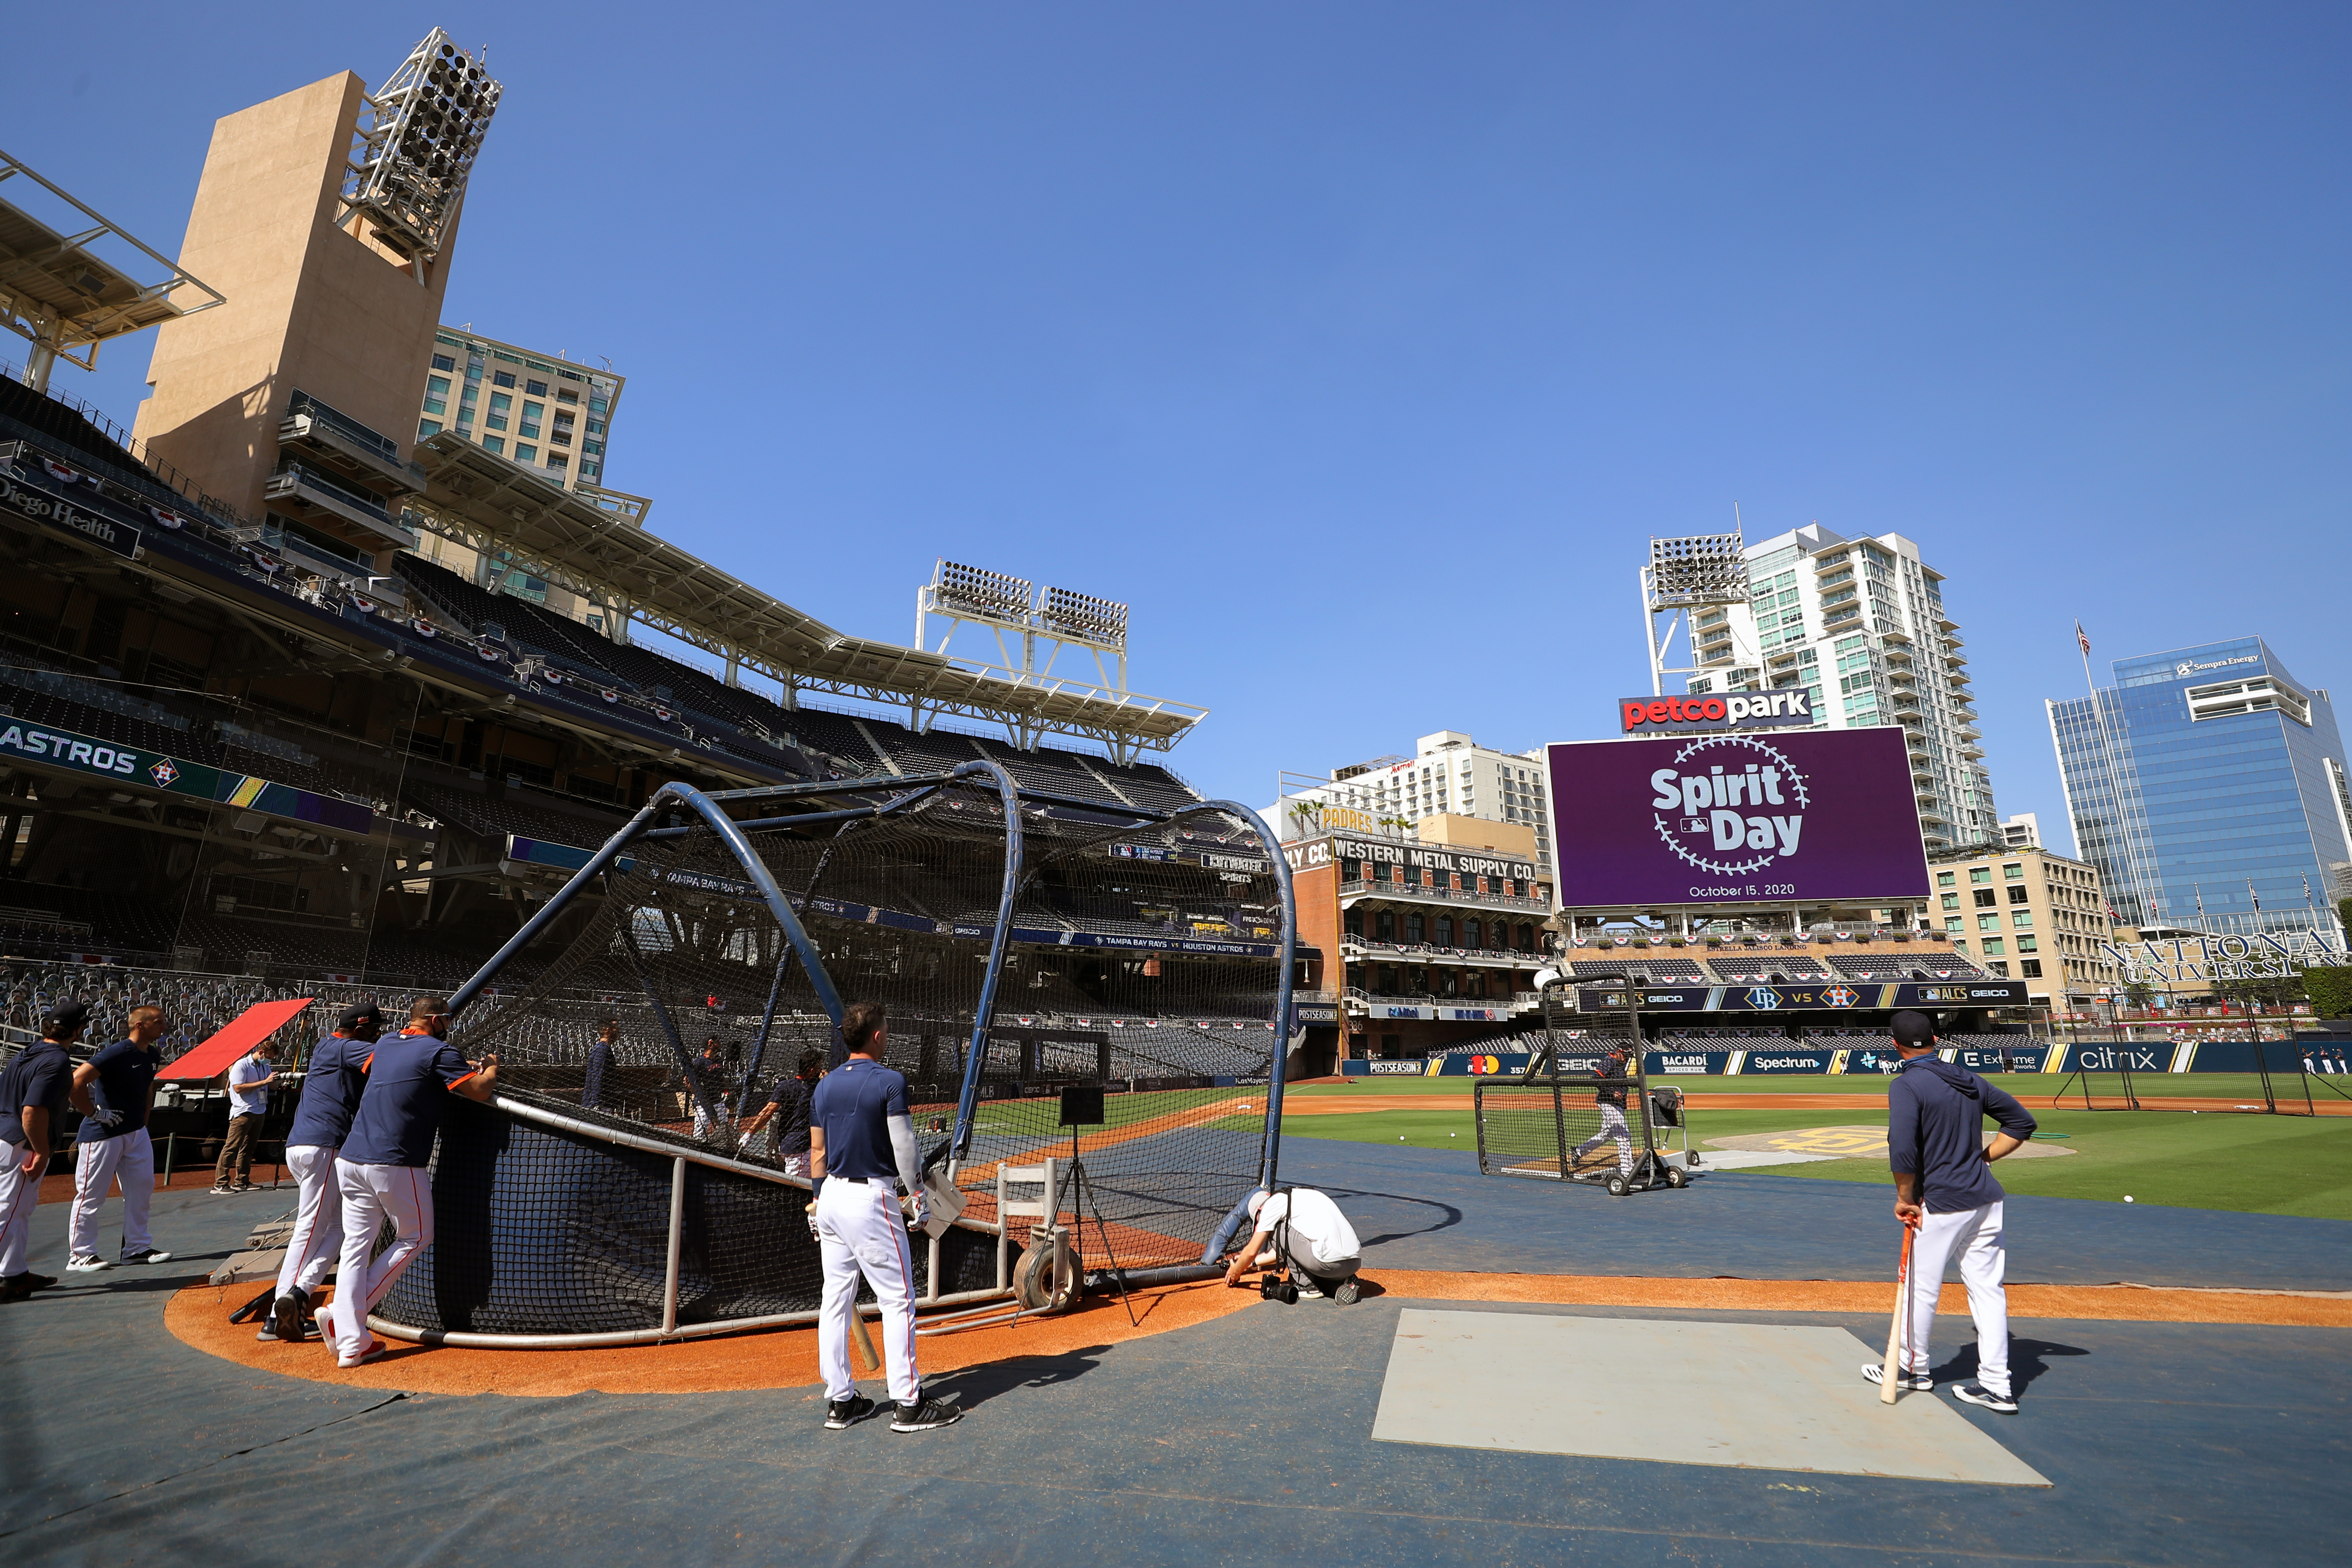 American League Championship Series Game 5: Tampa Bay Rays v. Houston Astros